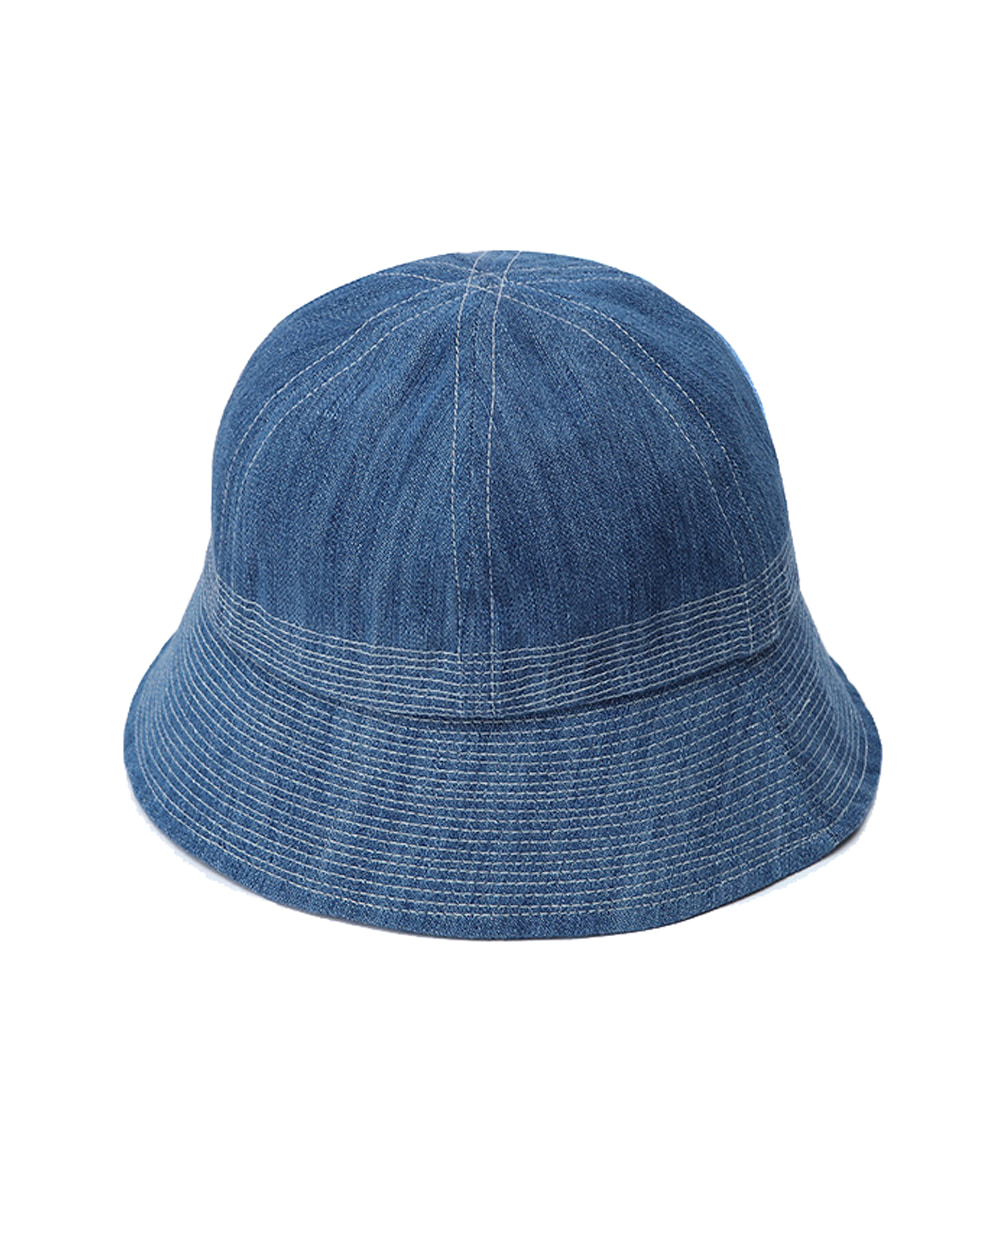 YMC Gilligan Hat (Indigo Bleach)